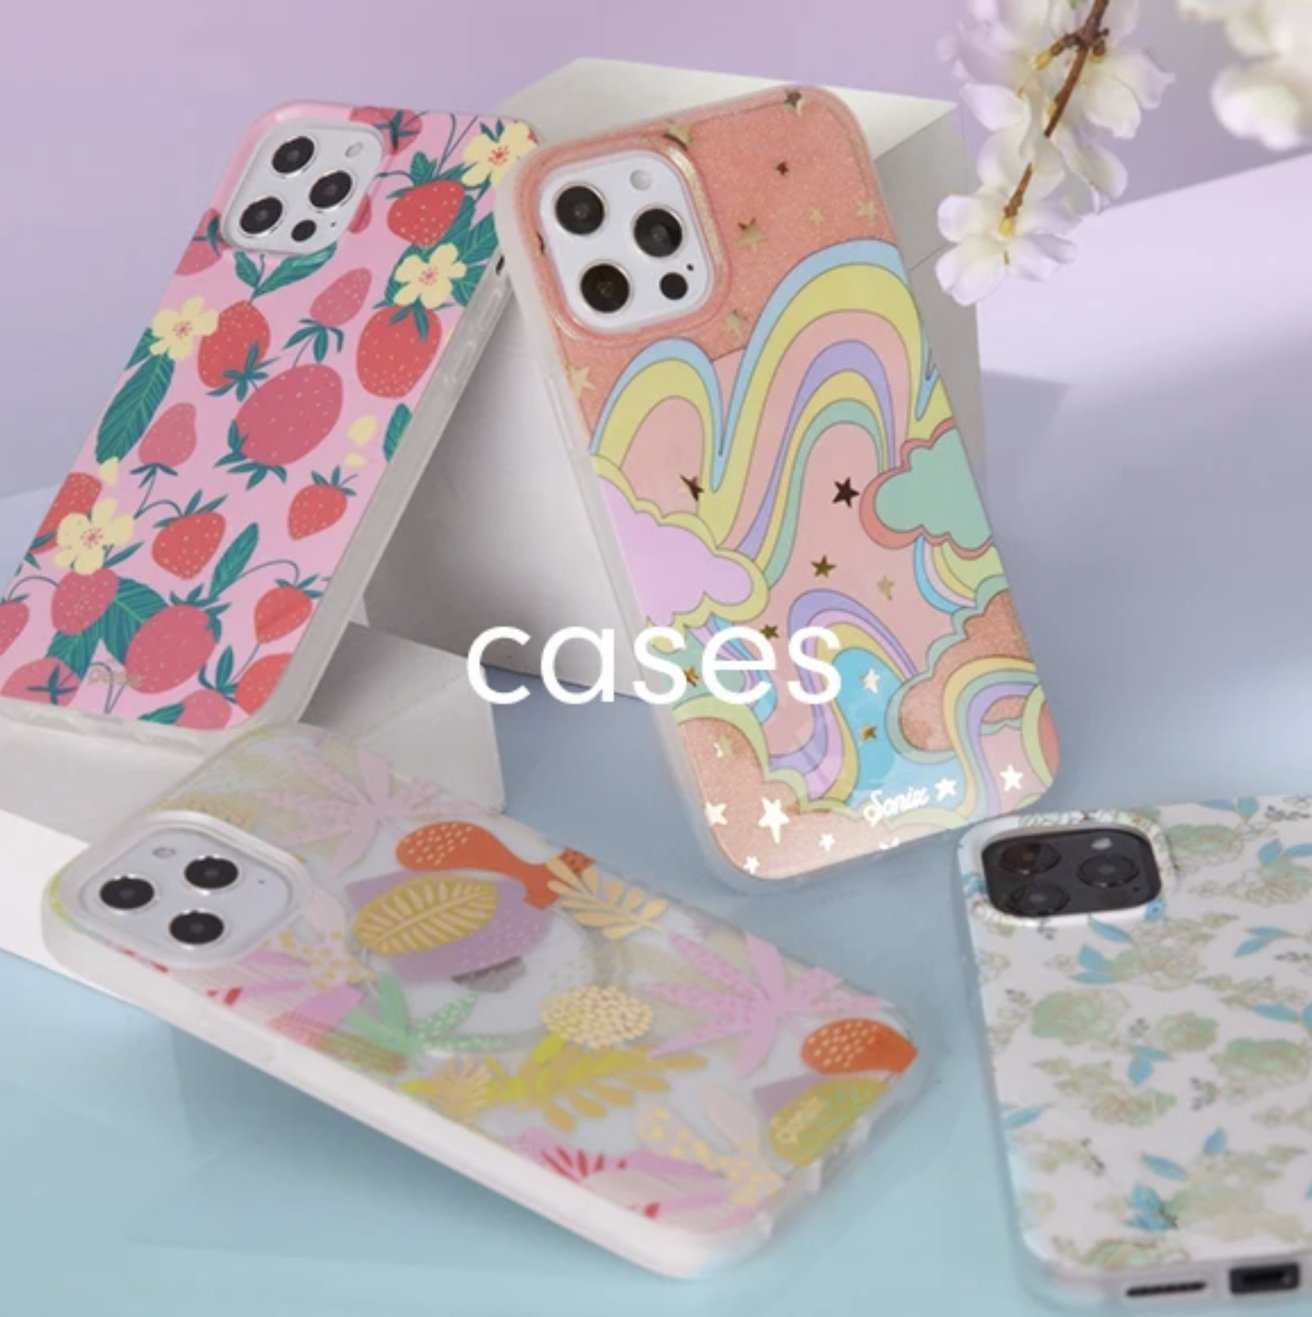 Sonix has some cool new cases